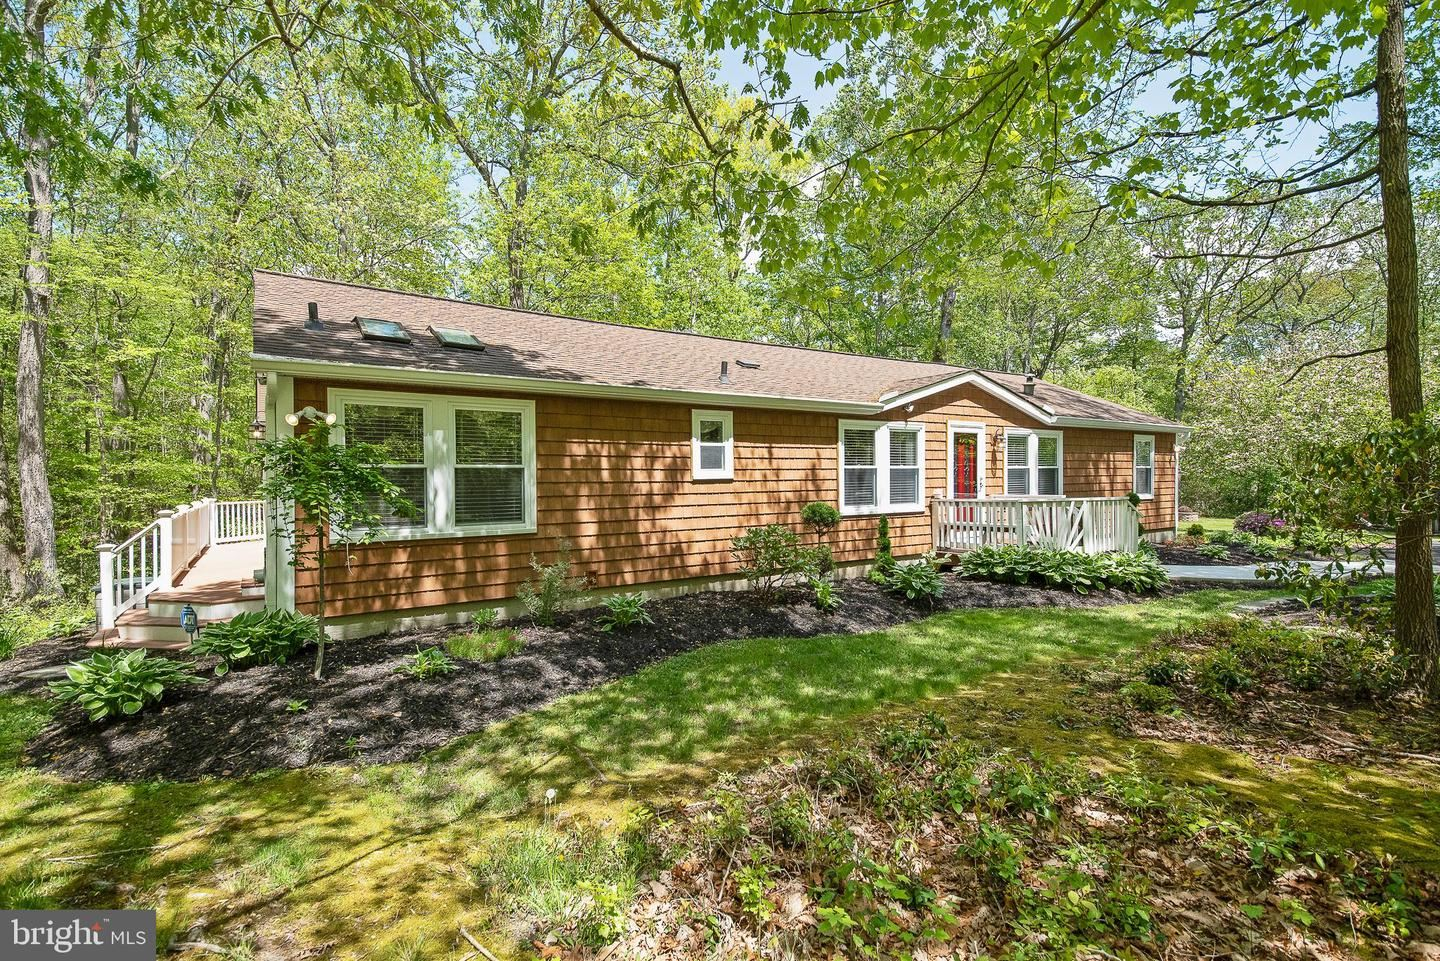 3630 ABINGDON BEACH RD, Abingdon, MD 21009 - MLS#: MDHR259140